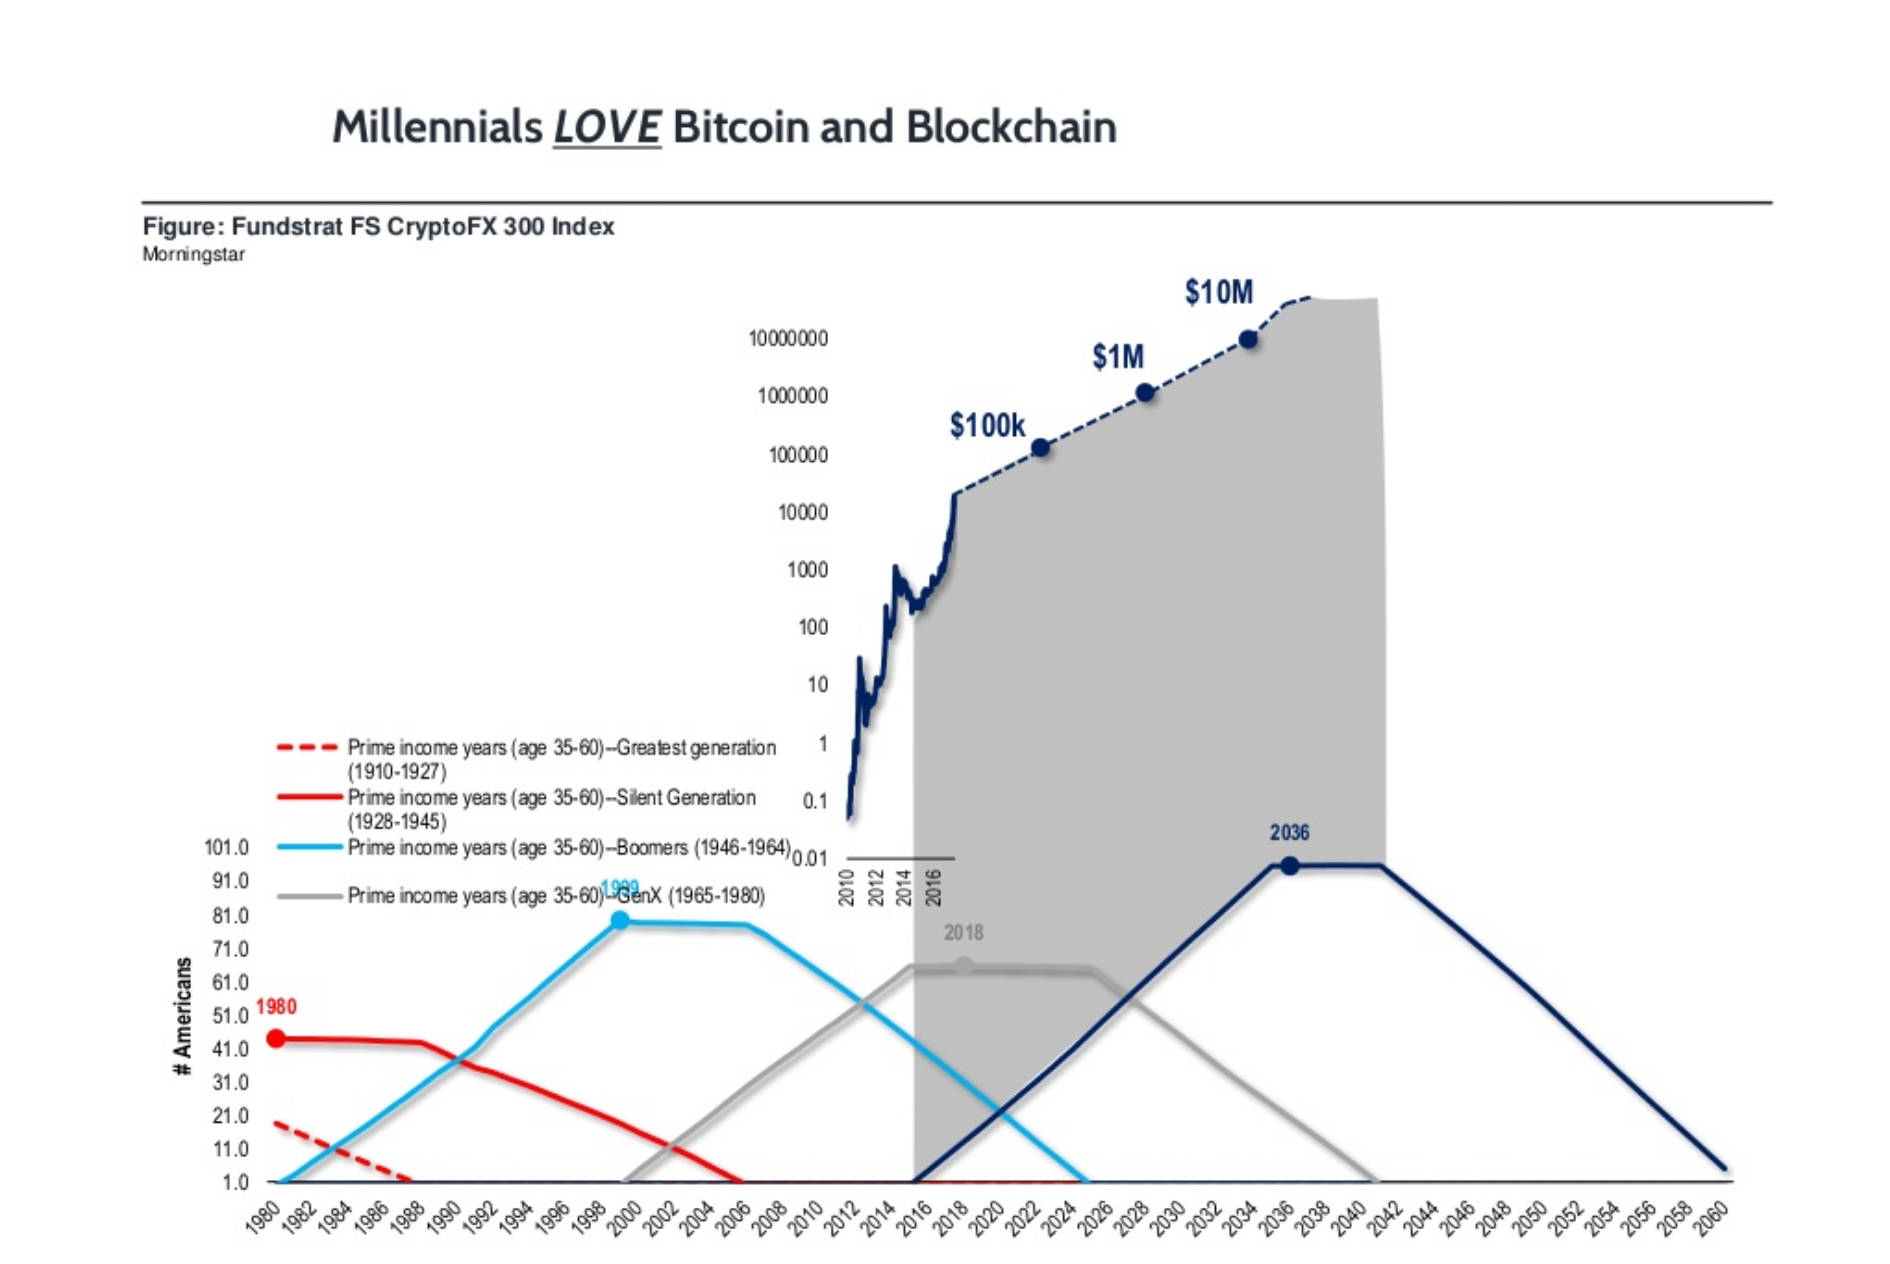 Millennials love bitcoin